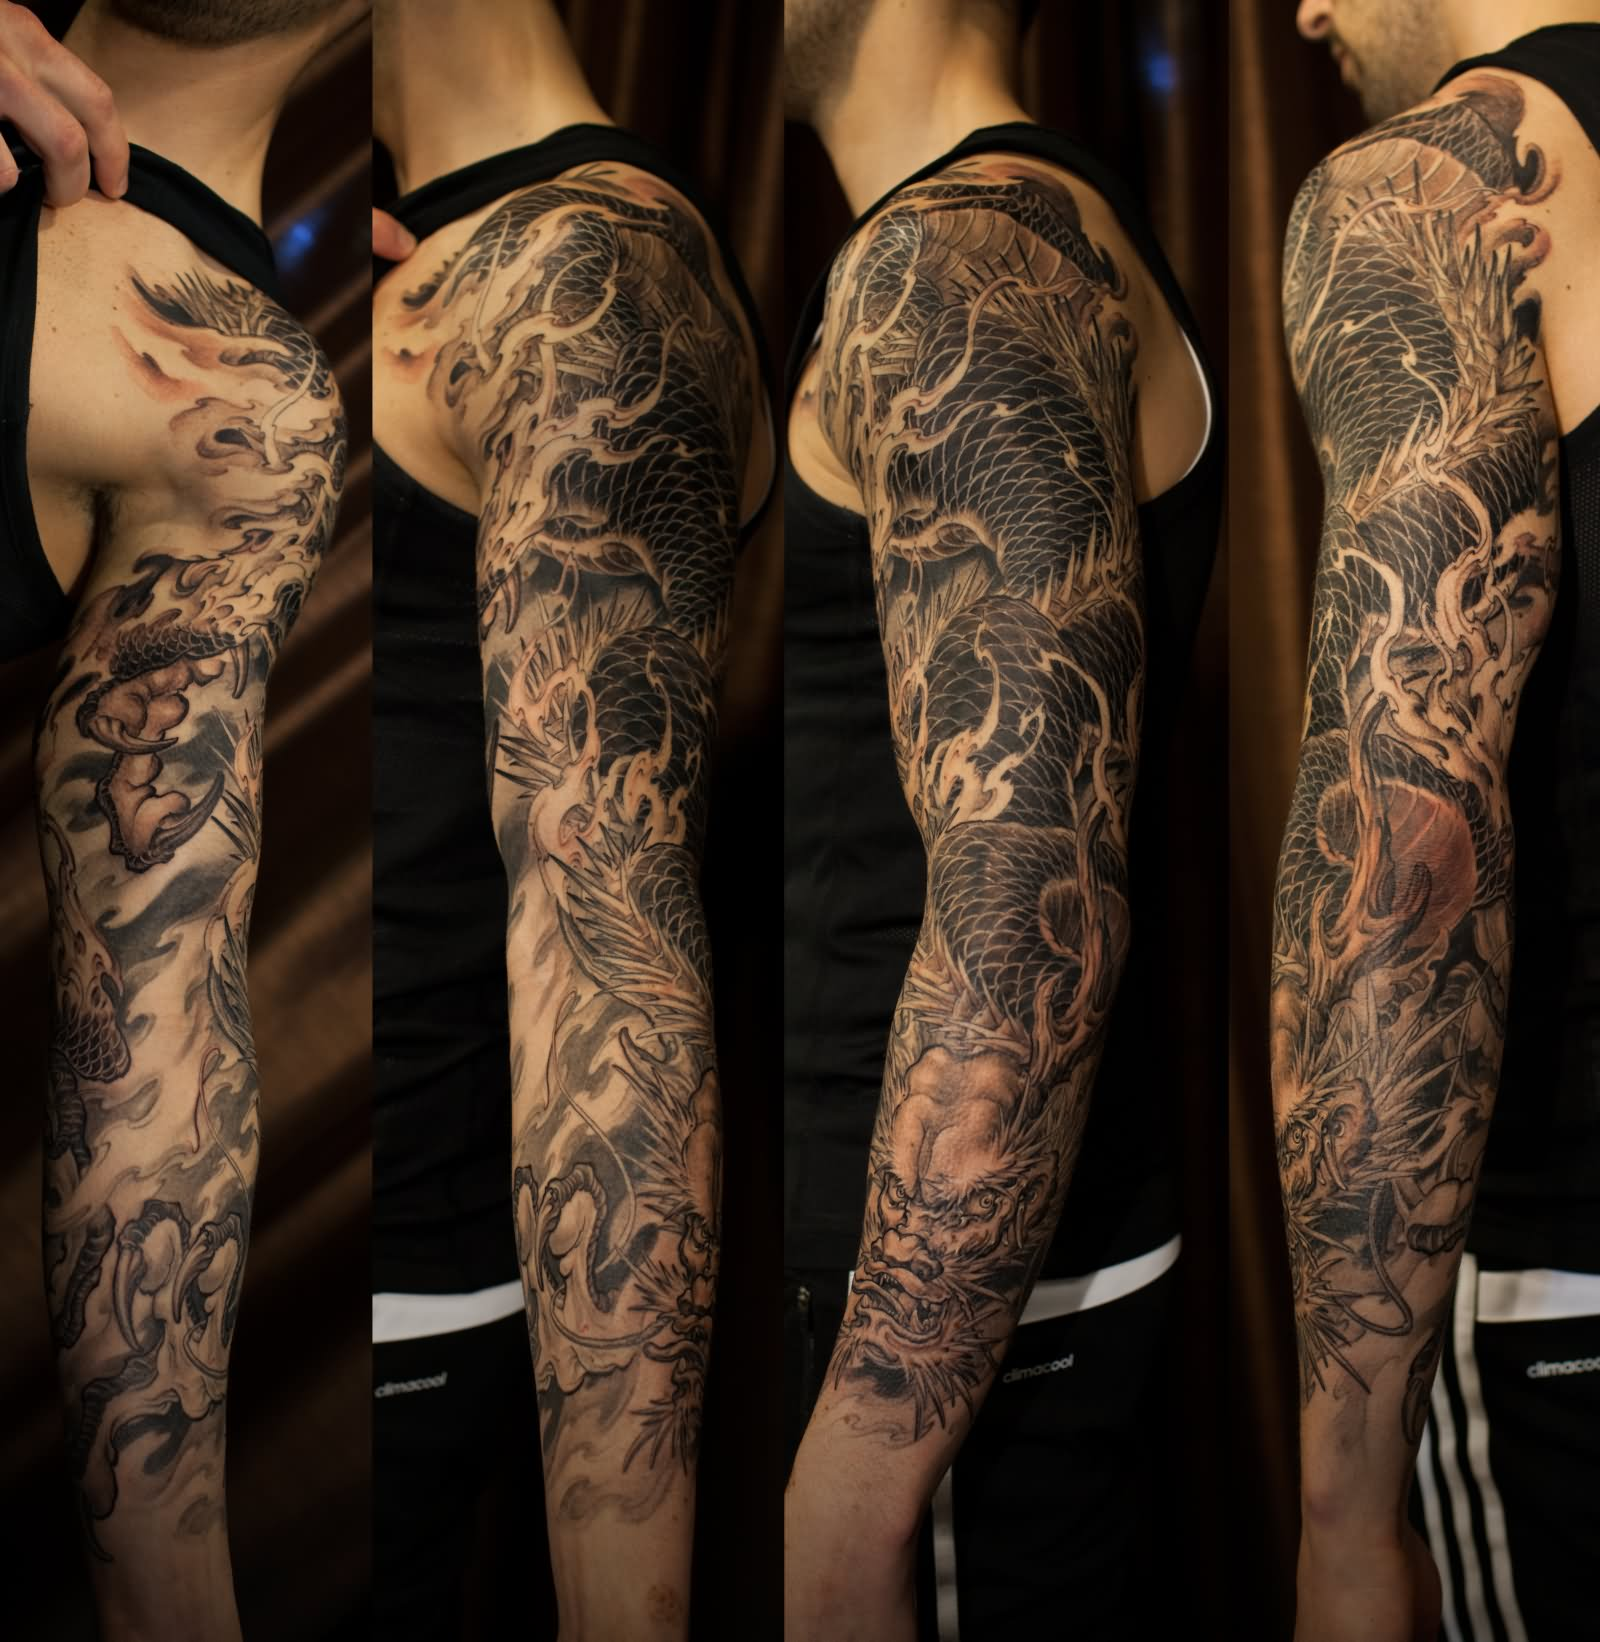 Black Ink Dragon Tattoo On Man Left Full Sleeve